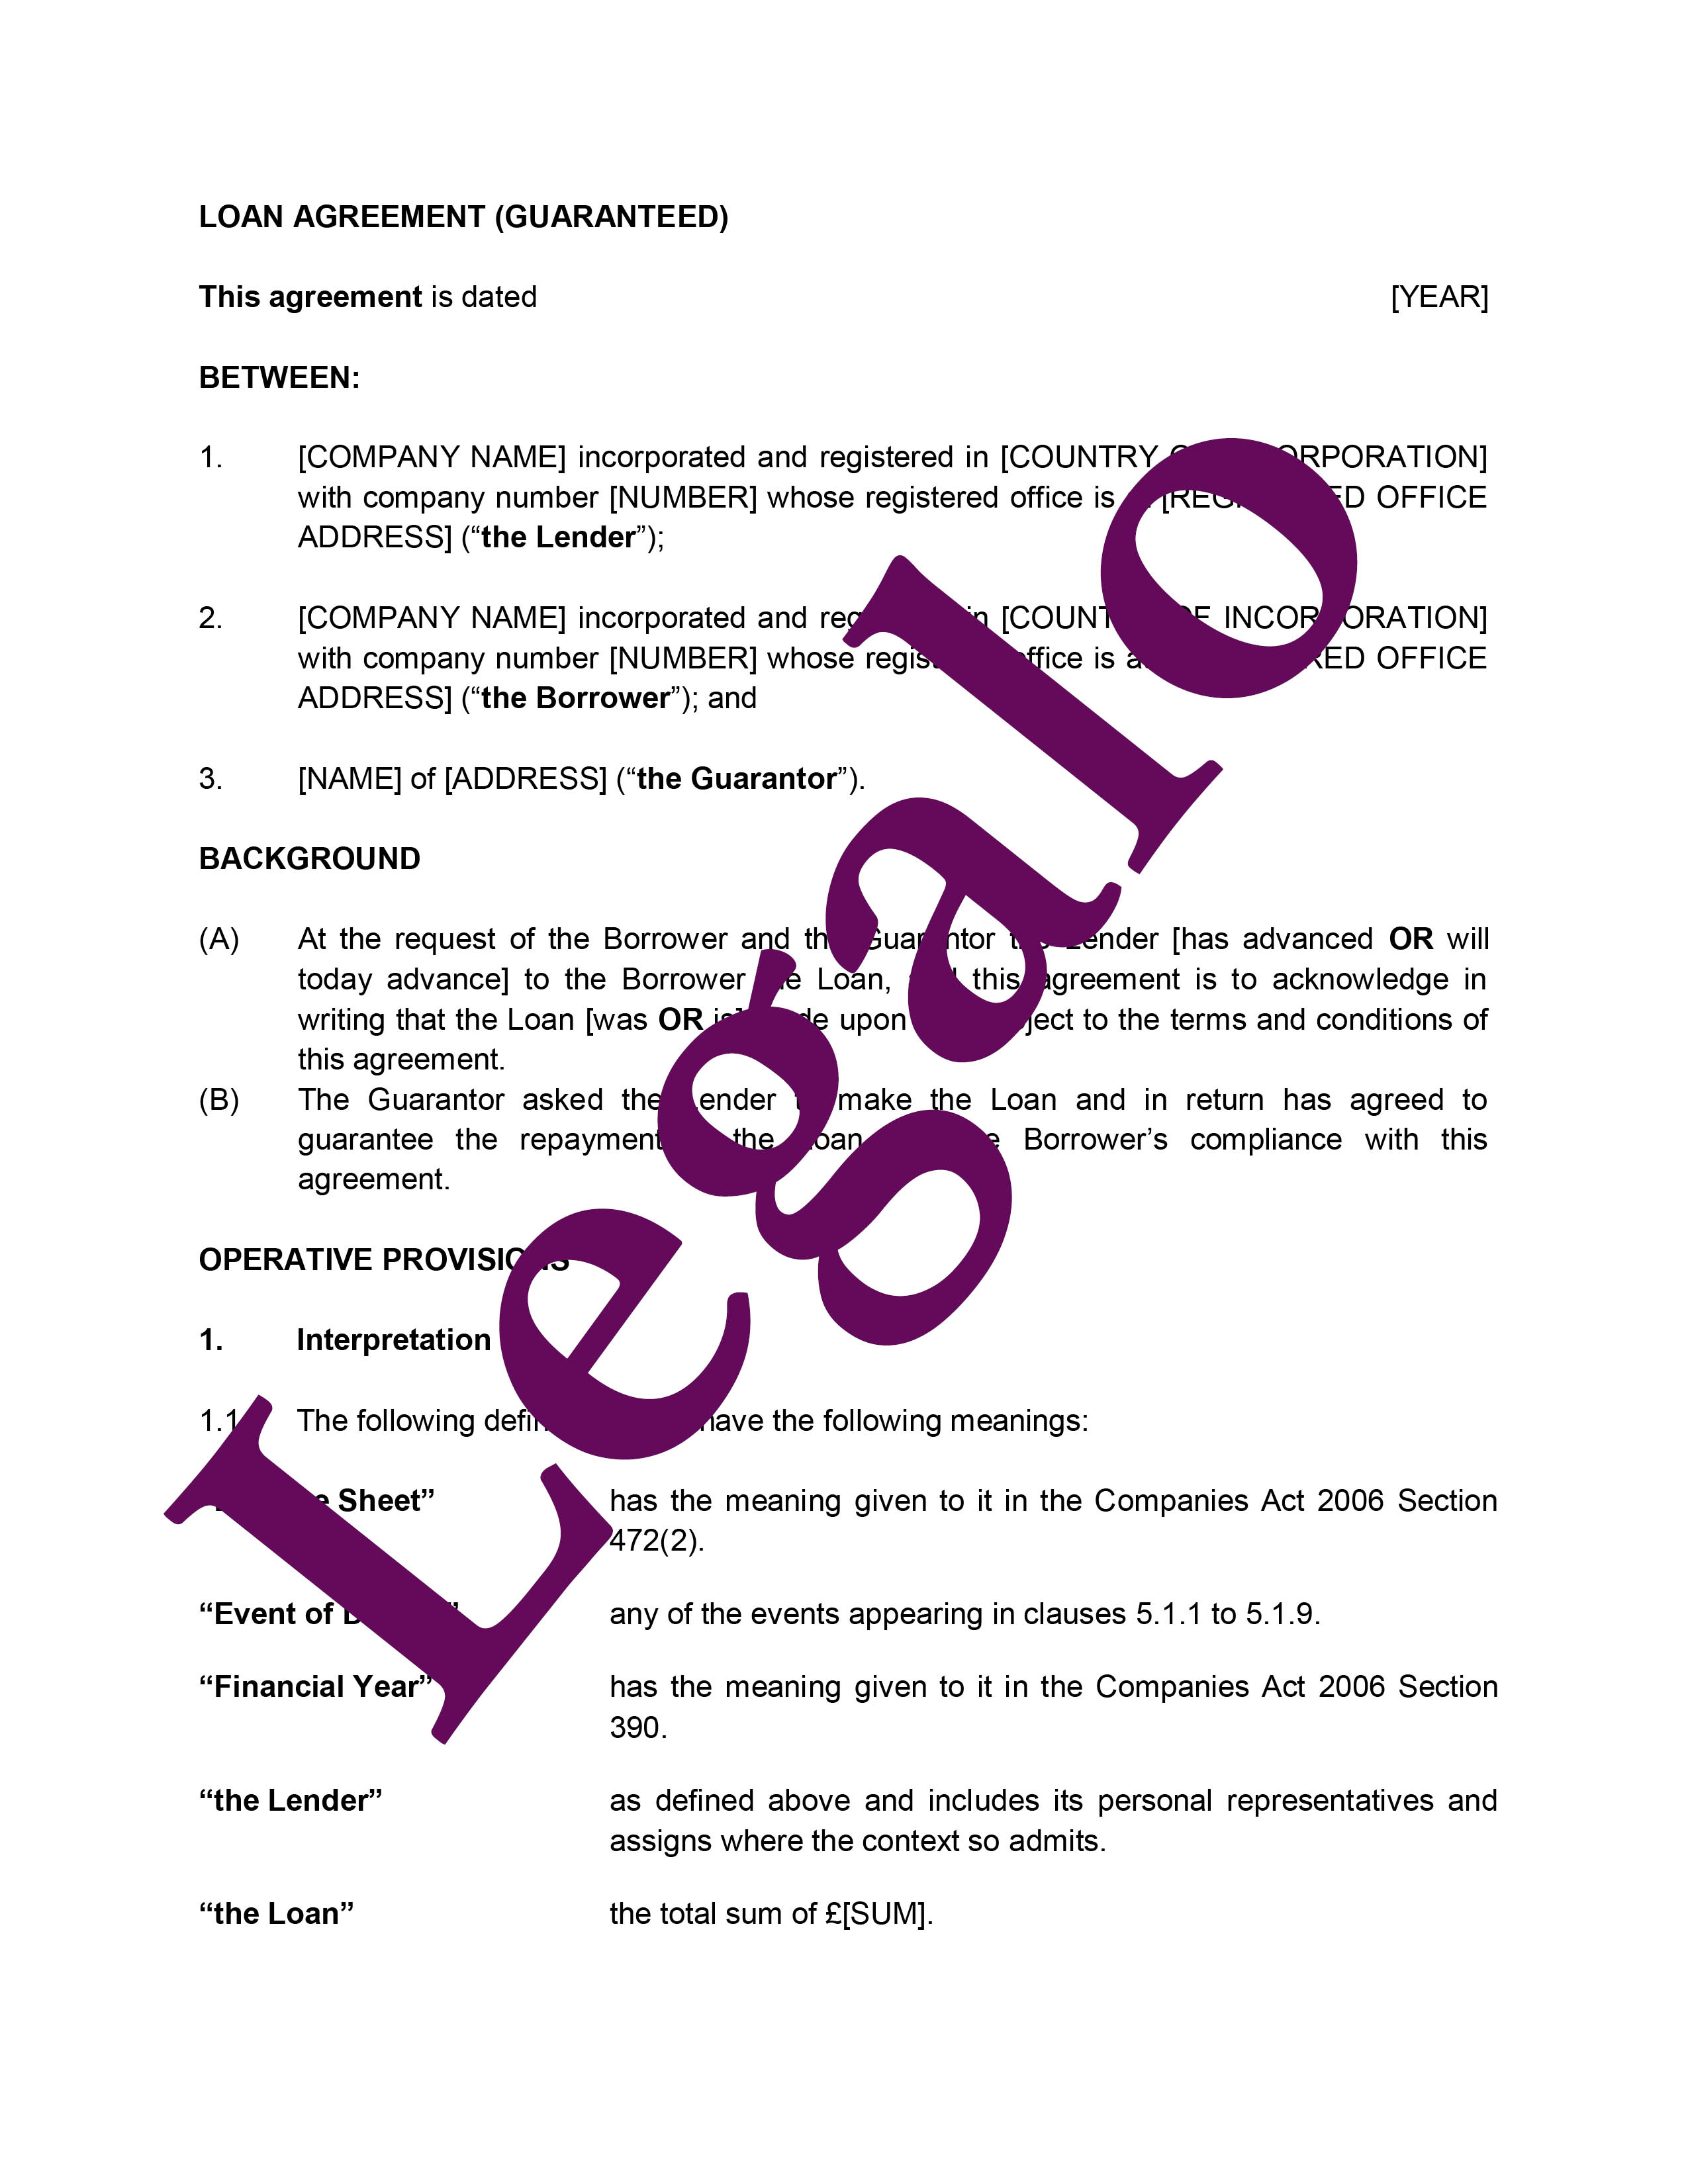 Guaranteed loan agreement preview image page 1